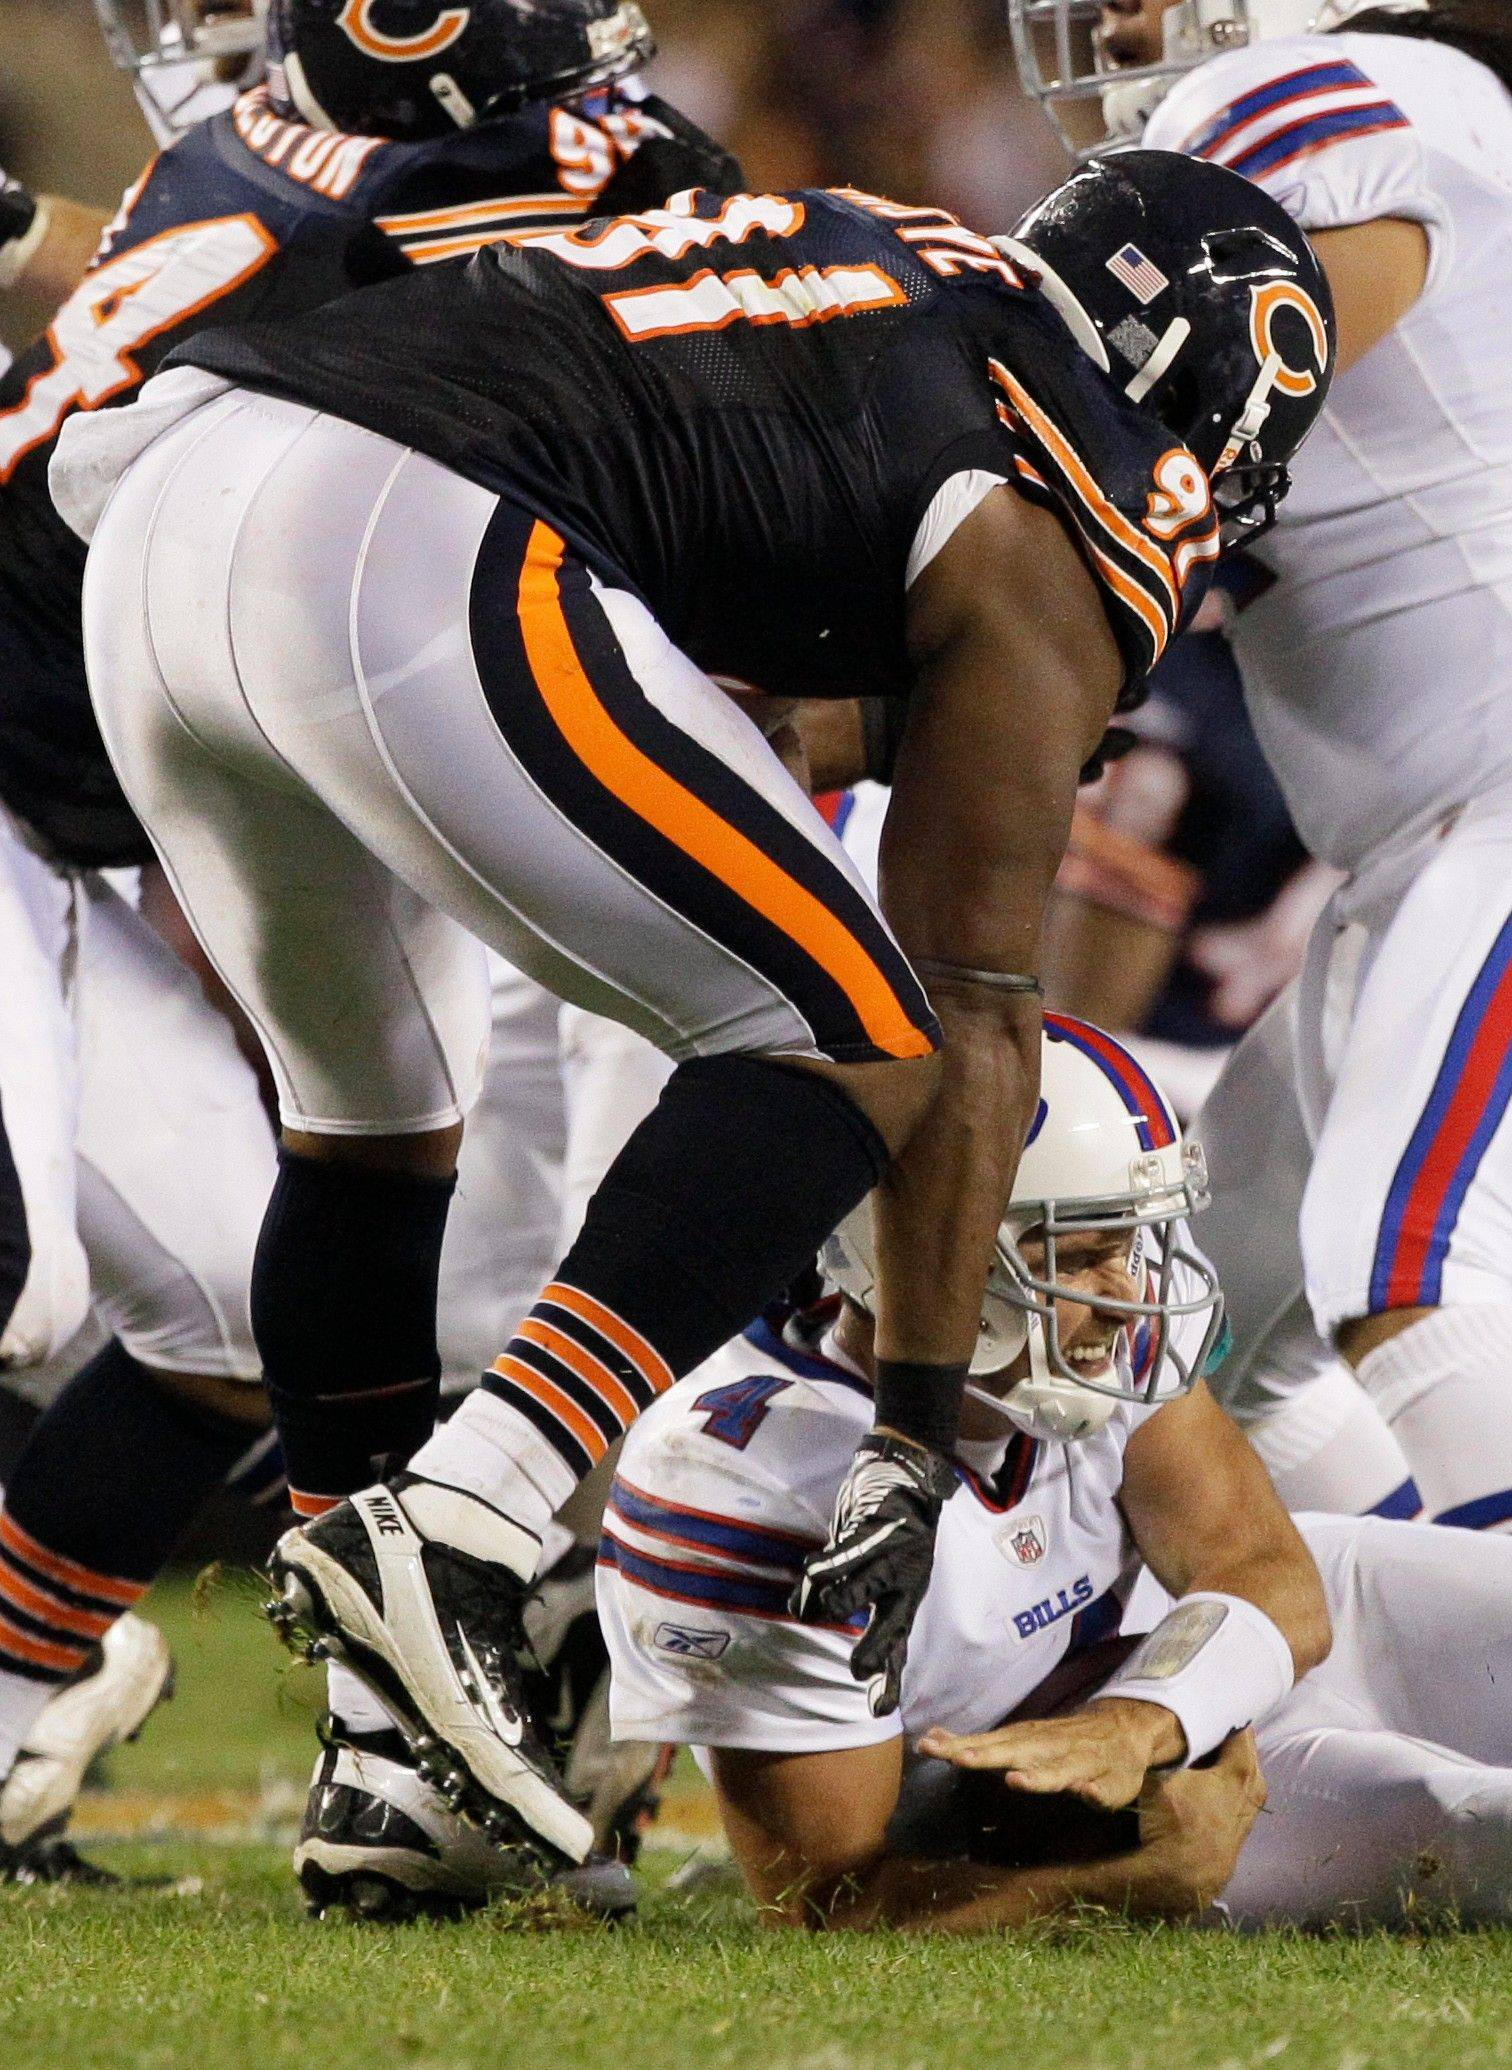 Bears defensive tackle Amobi Okoye sacks Bills quarterback Tyler Thigpen in the preseason opener.